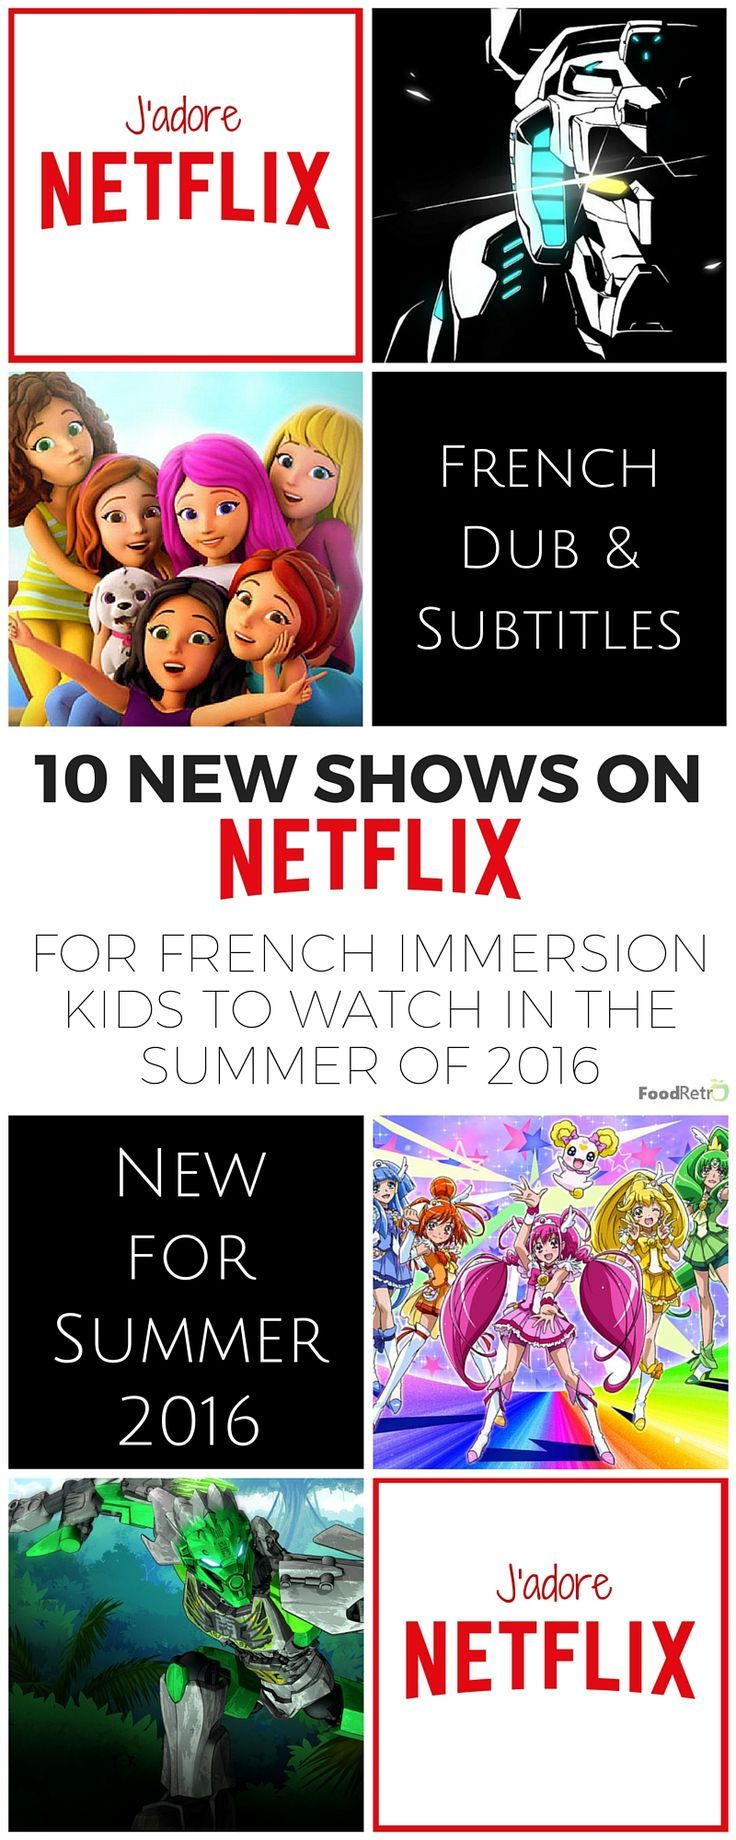 10 New Netflix Shows For French Immersion Kids to Watch in